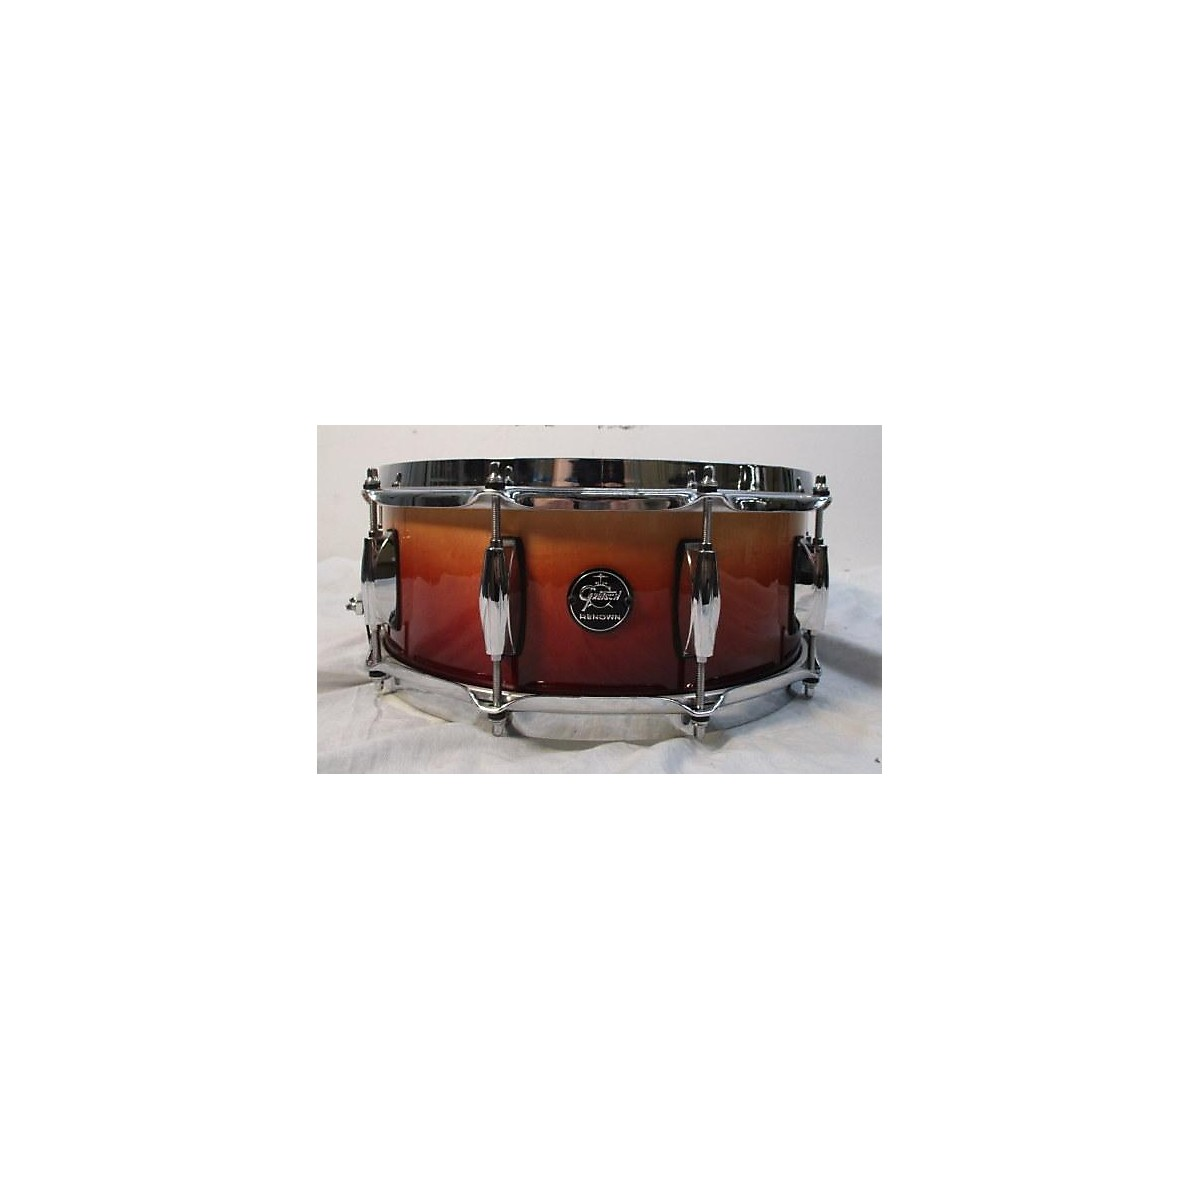 Gretsch Drums 5X14 Renown Snare Drum